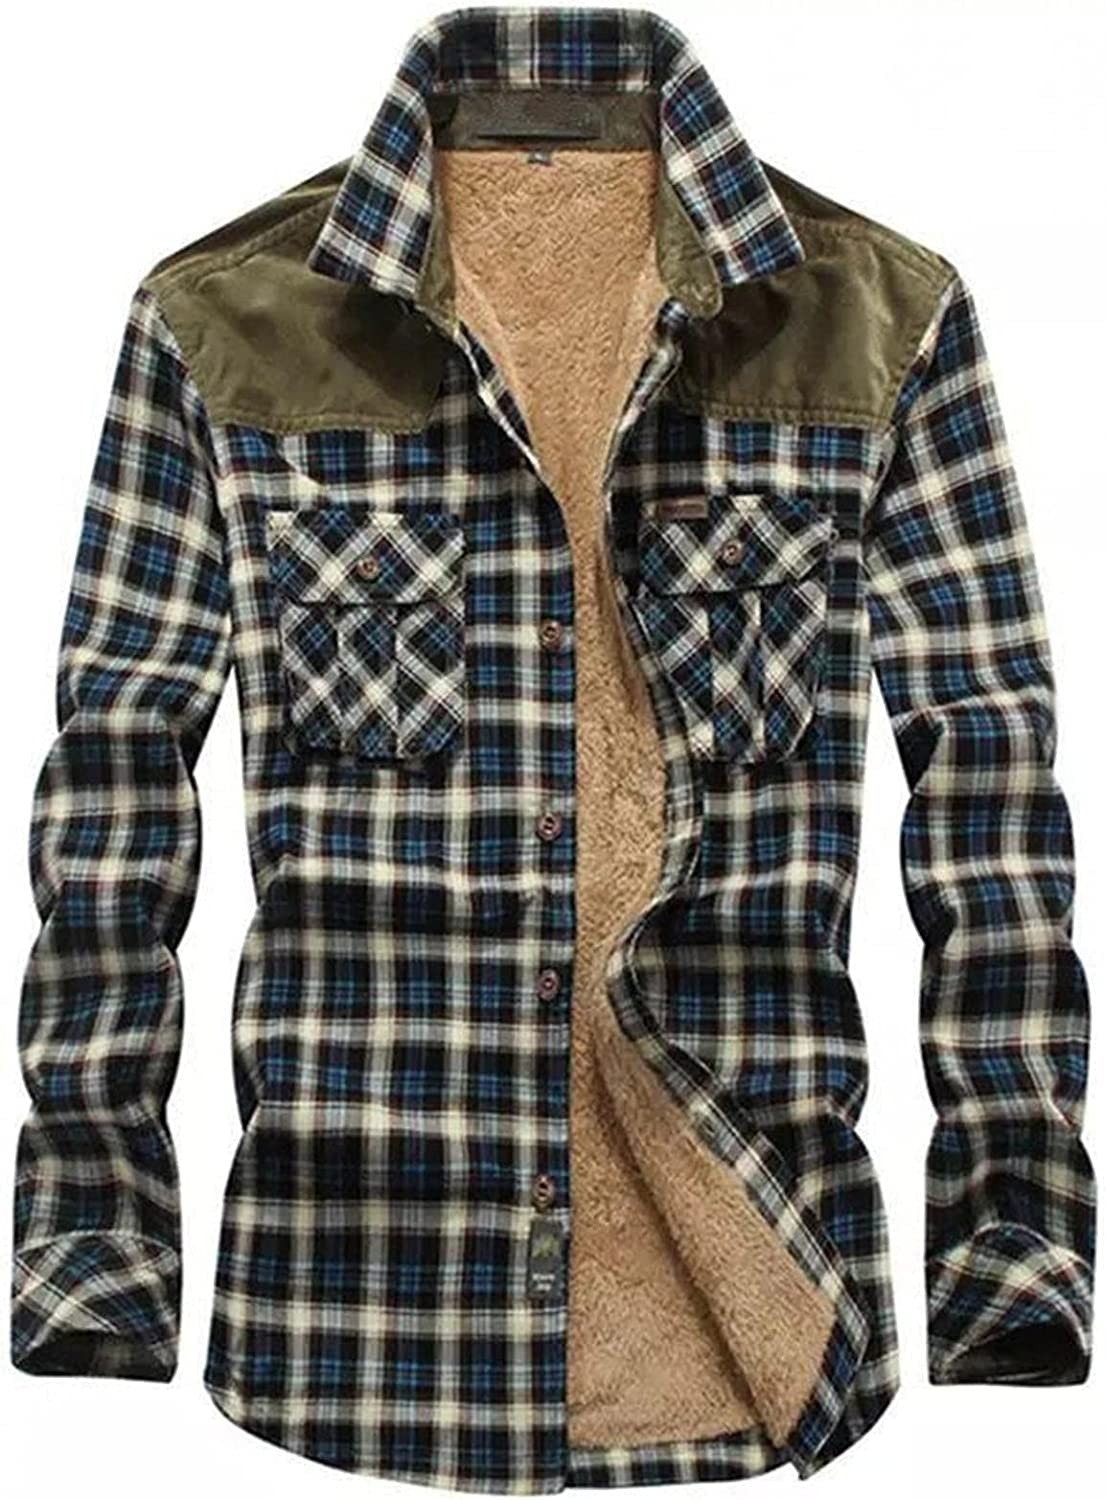 Mens Sherpa Lined Fleece Flannel Shirt Jackets Casual Long Sleeve Plaid Button Down Shirts Winter Warm Coats for Mens